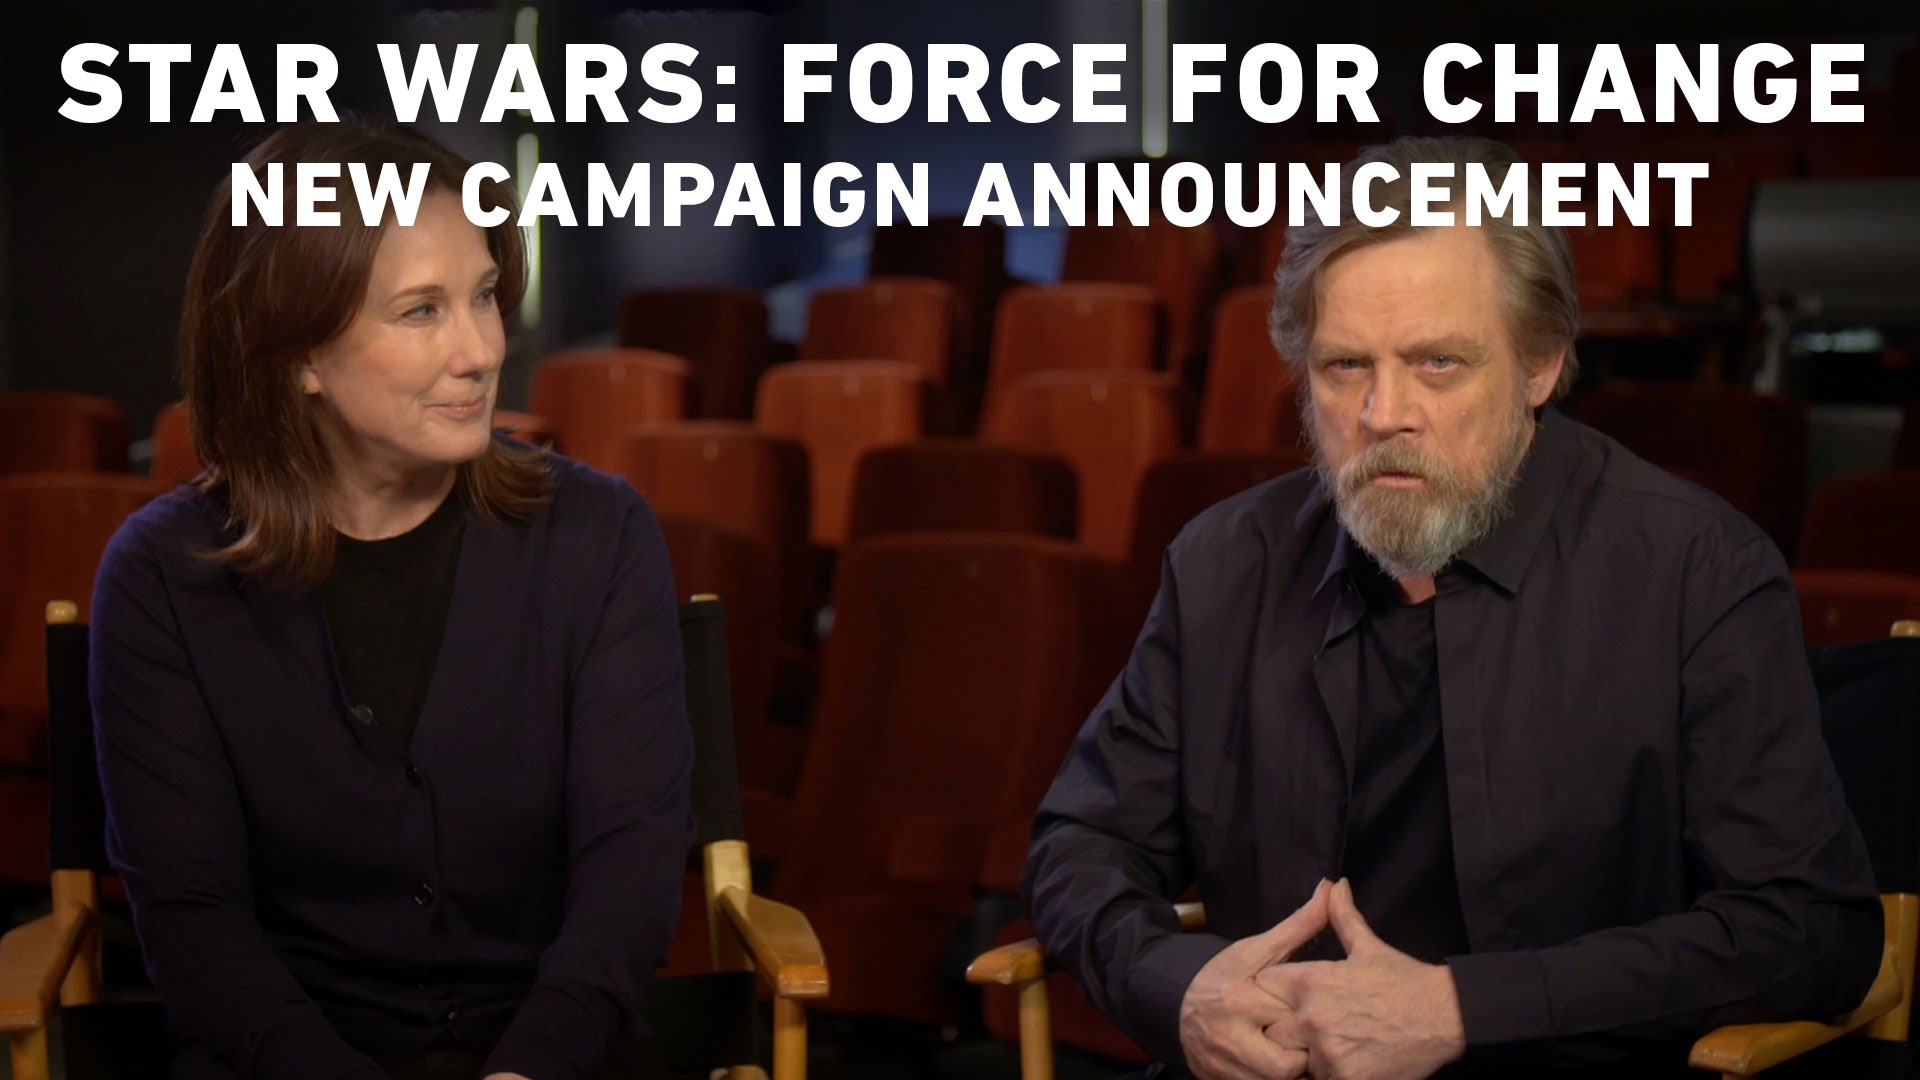 Kathleen Kennedy & Mark Hamill Announce New Star Wars: Force For Change Campaign